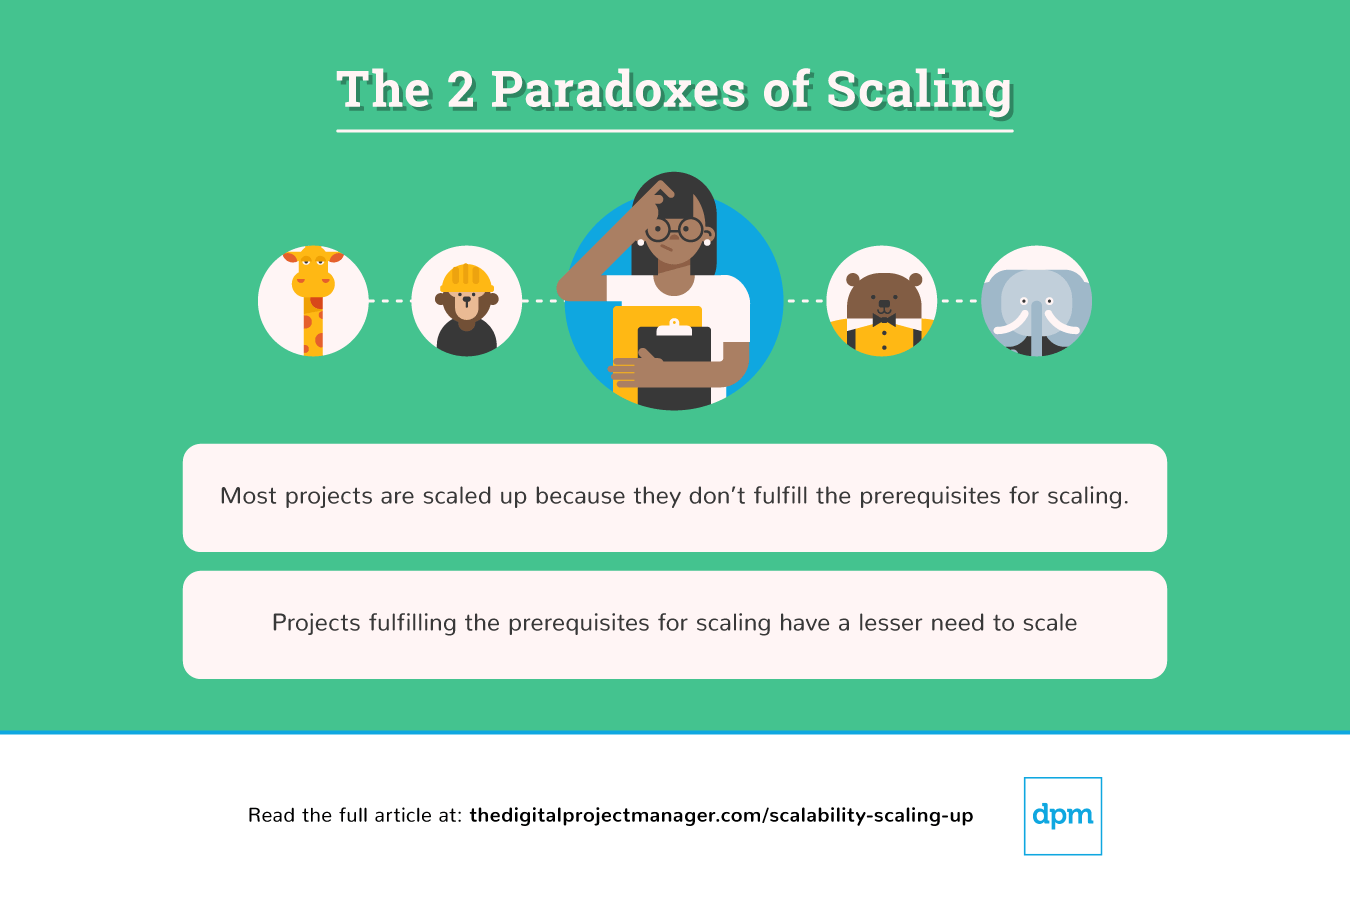 the 2 paradoxes of scaling